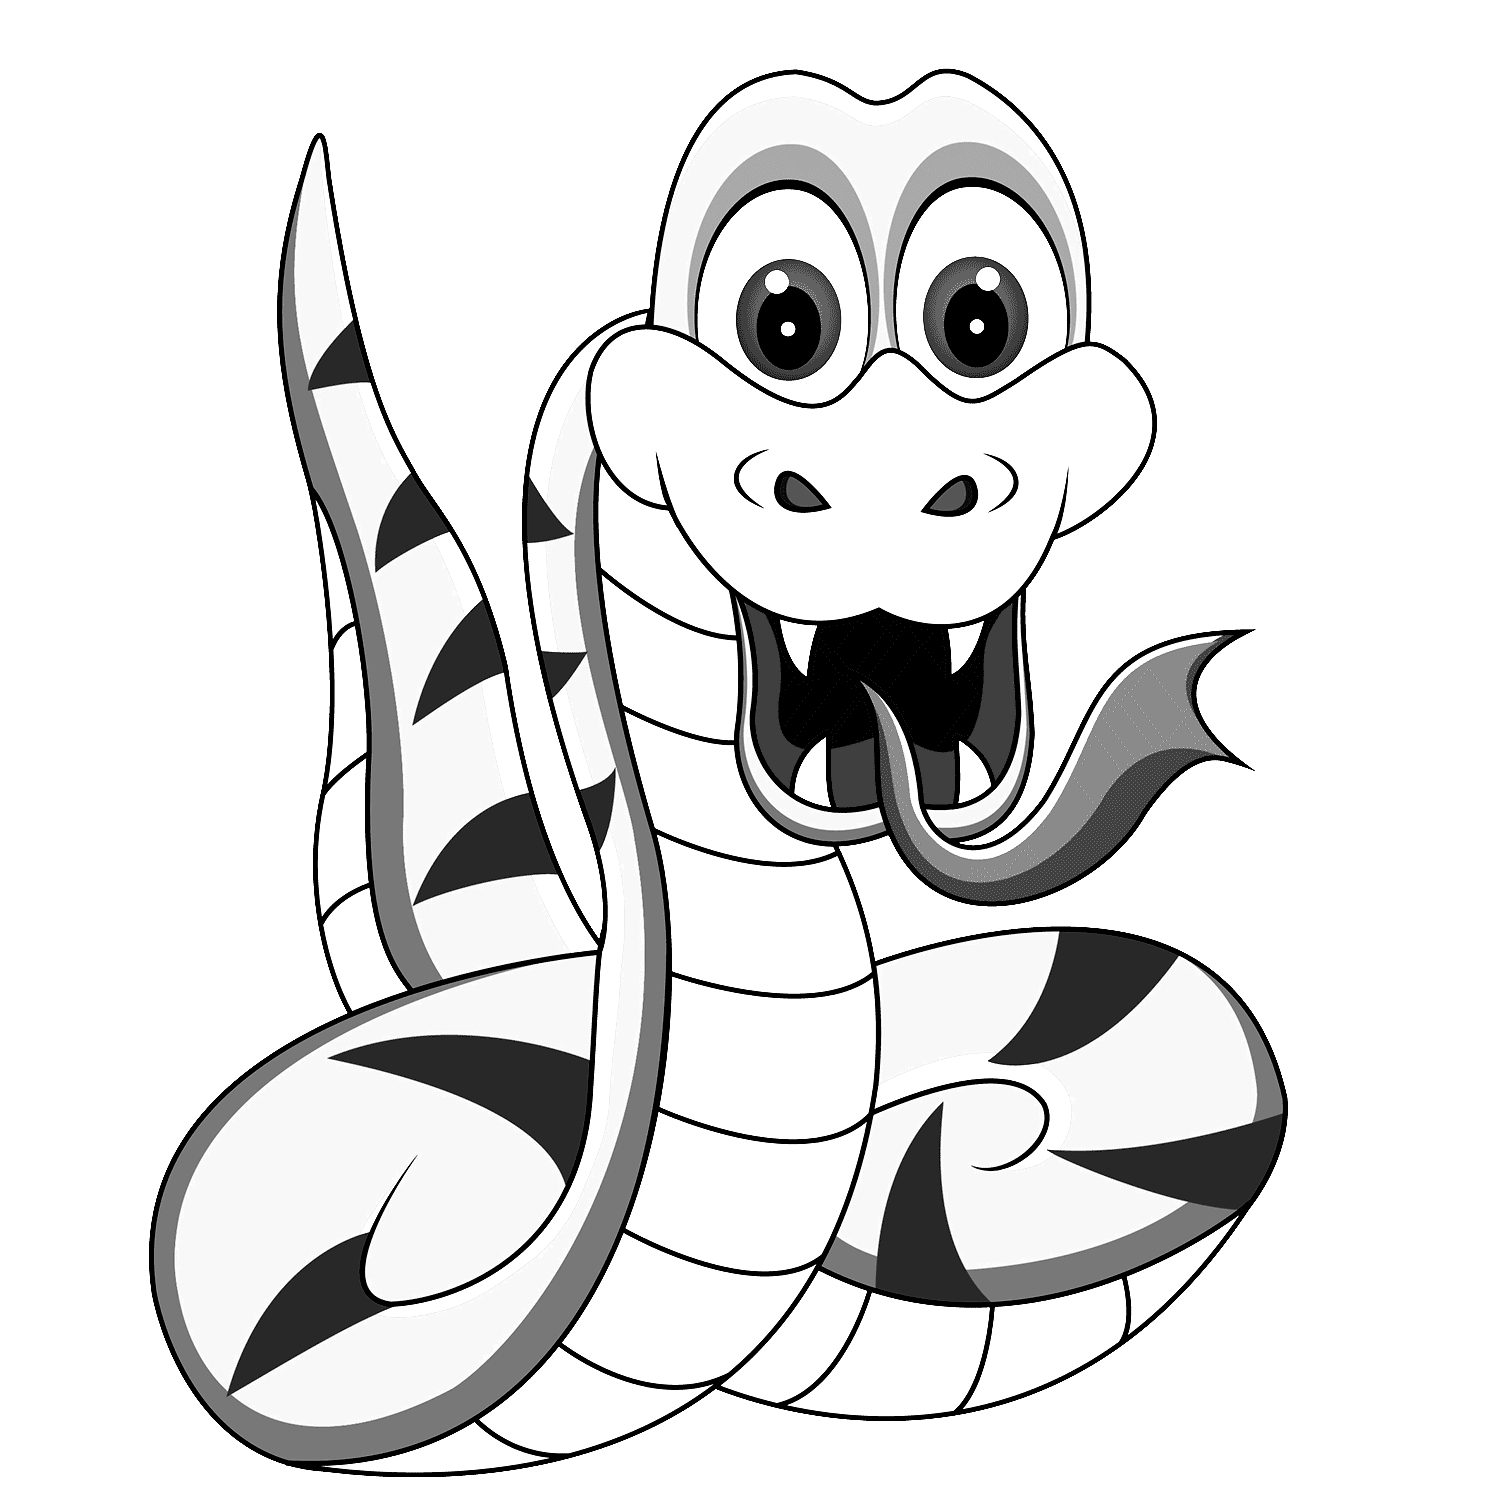 dragon coloring pages - Serpente da colorare per bambini